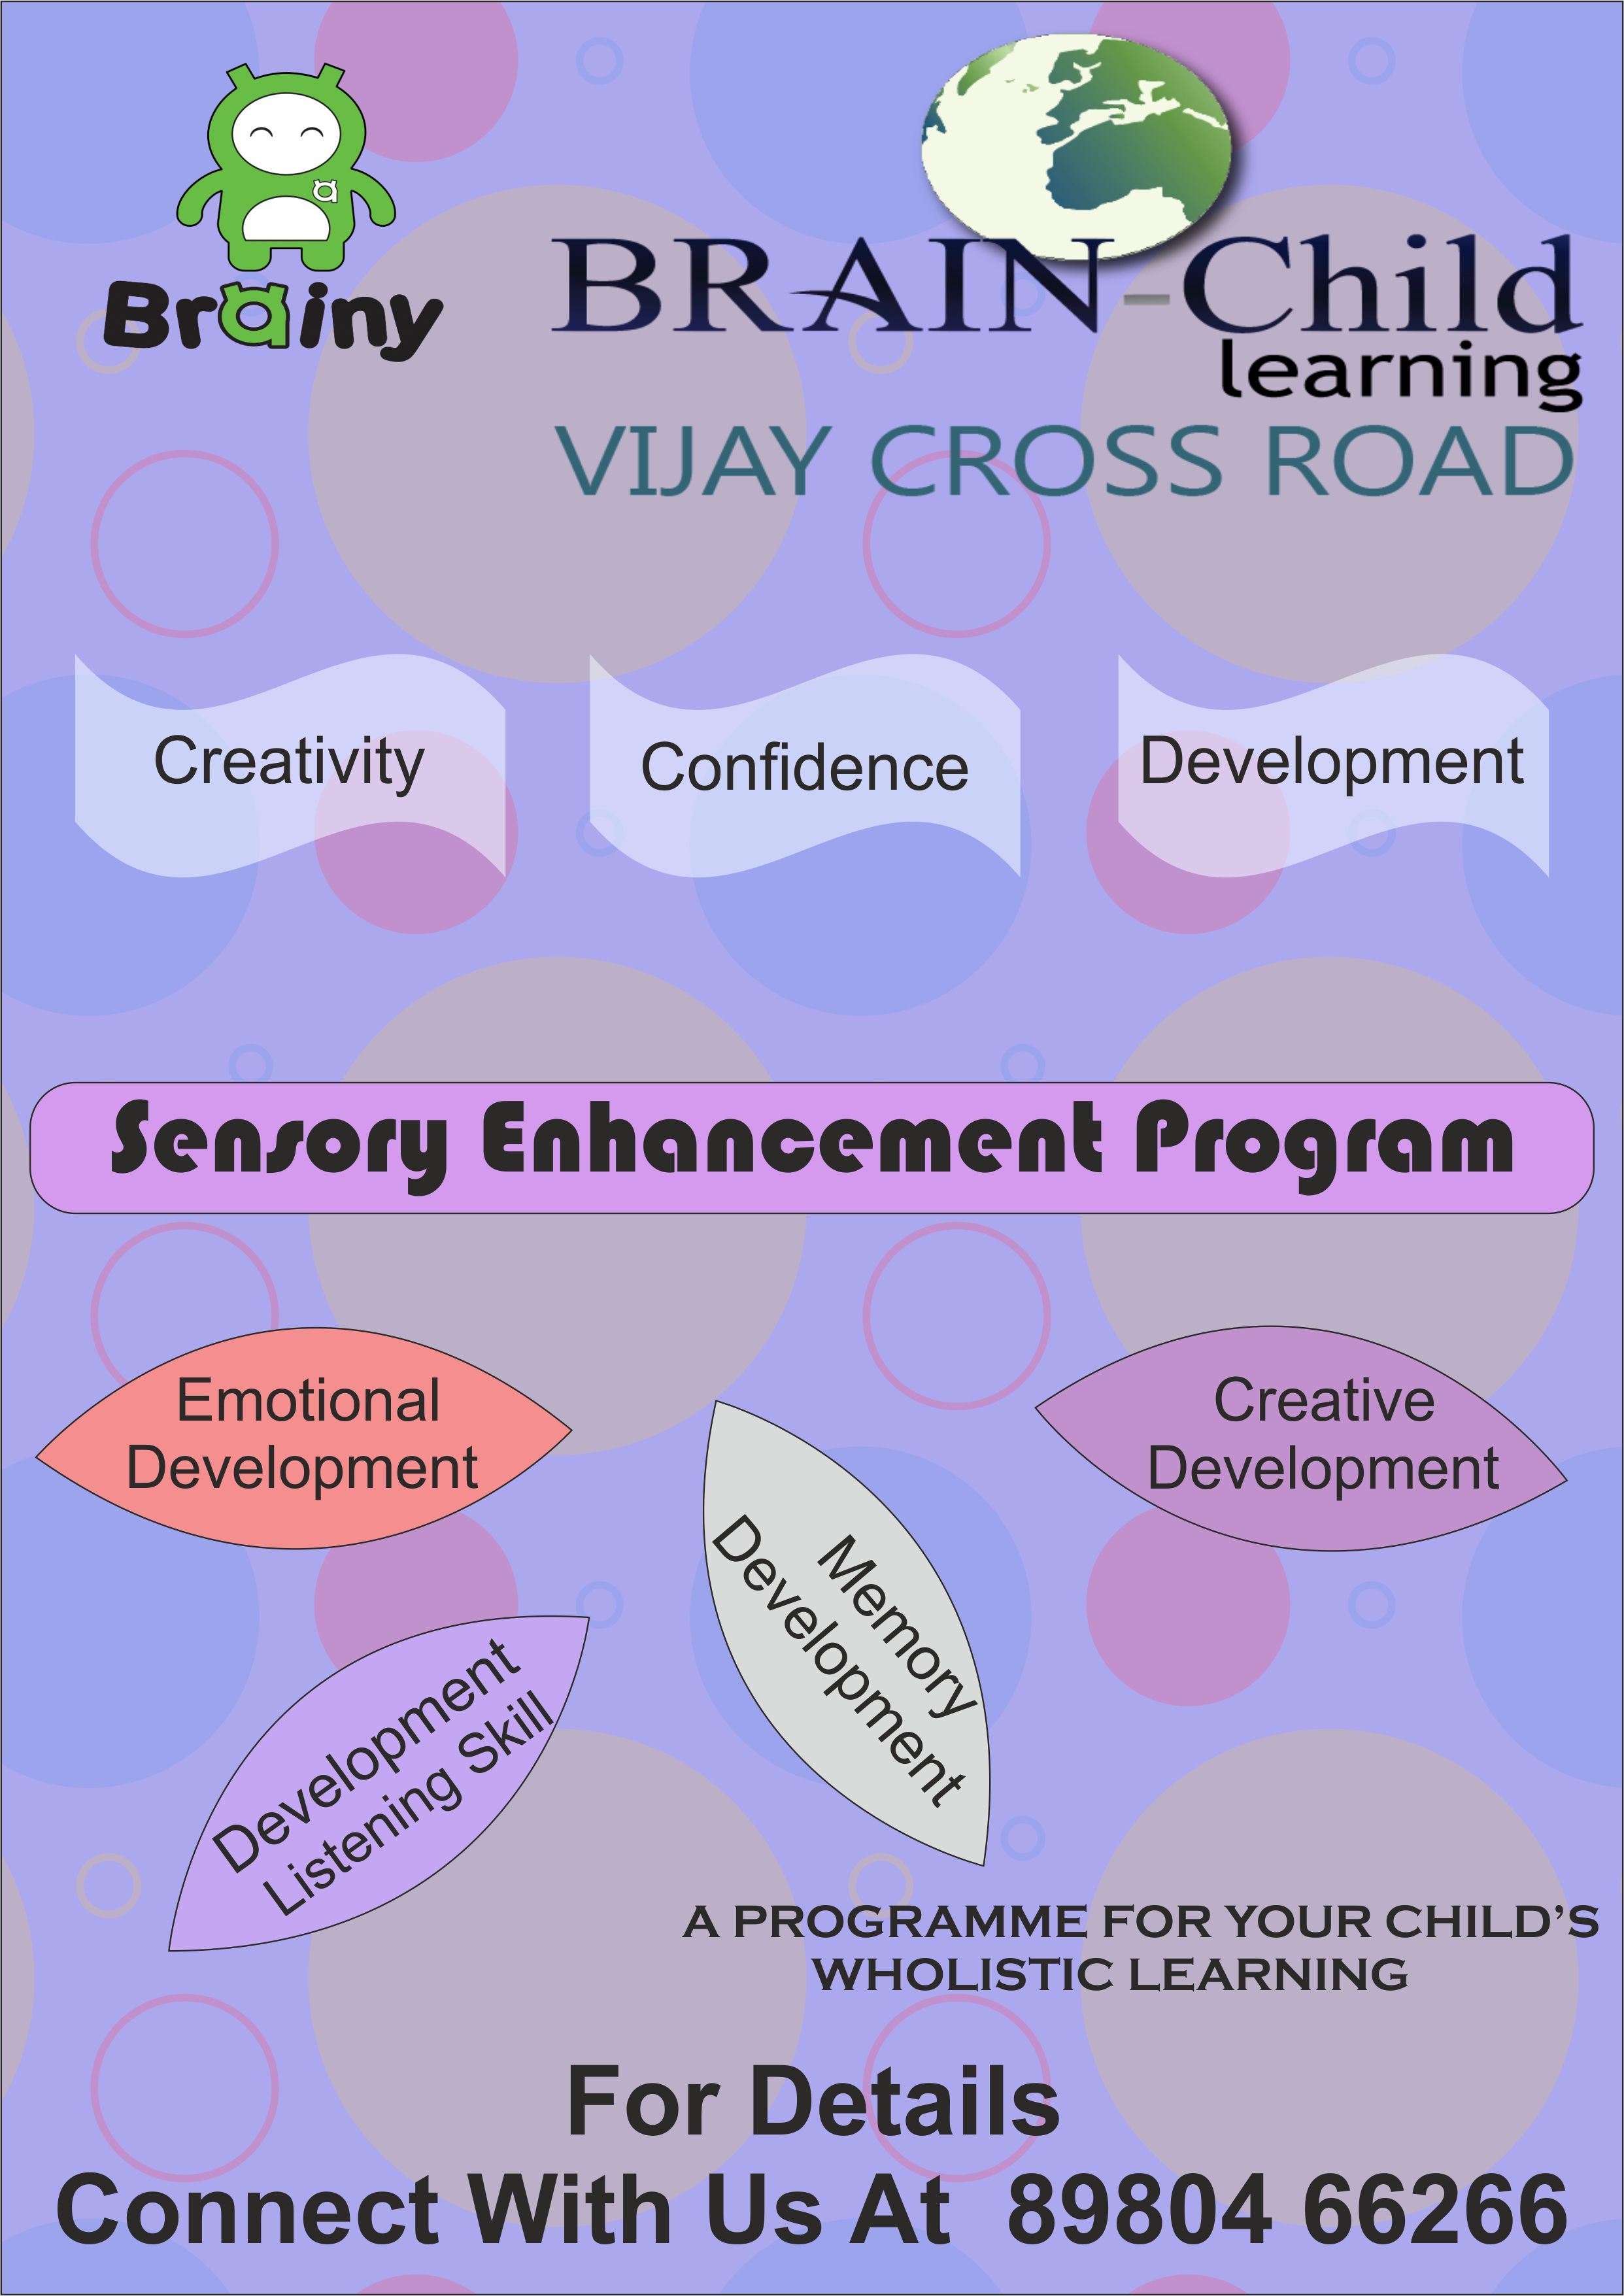 Sensory Enhancement Program At Brain Child Learning Vijay Cross Road Center Ahmedabad Emotionaldevelopment Memorydevelopment Creativedevelopment